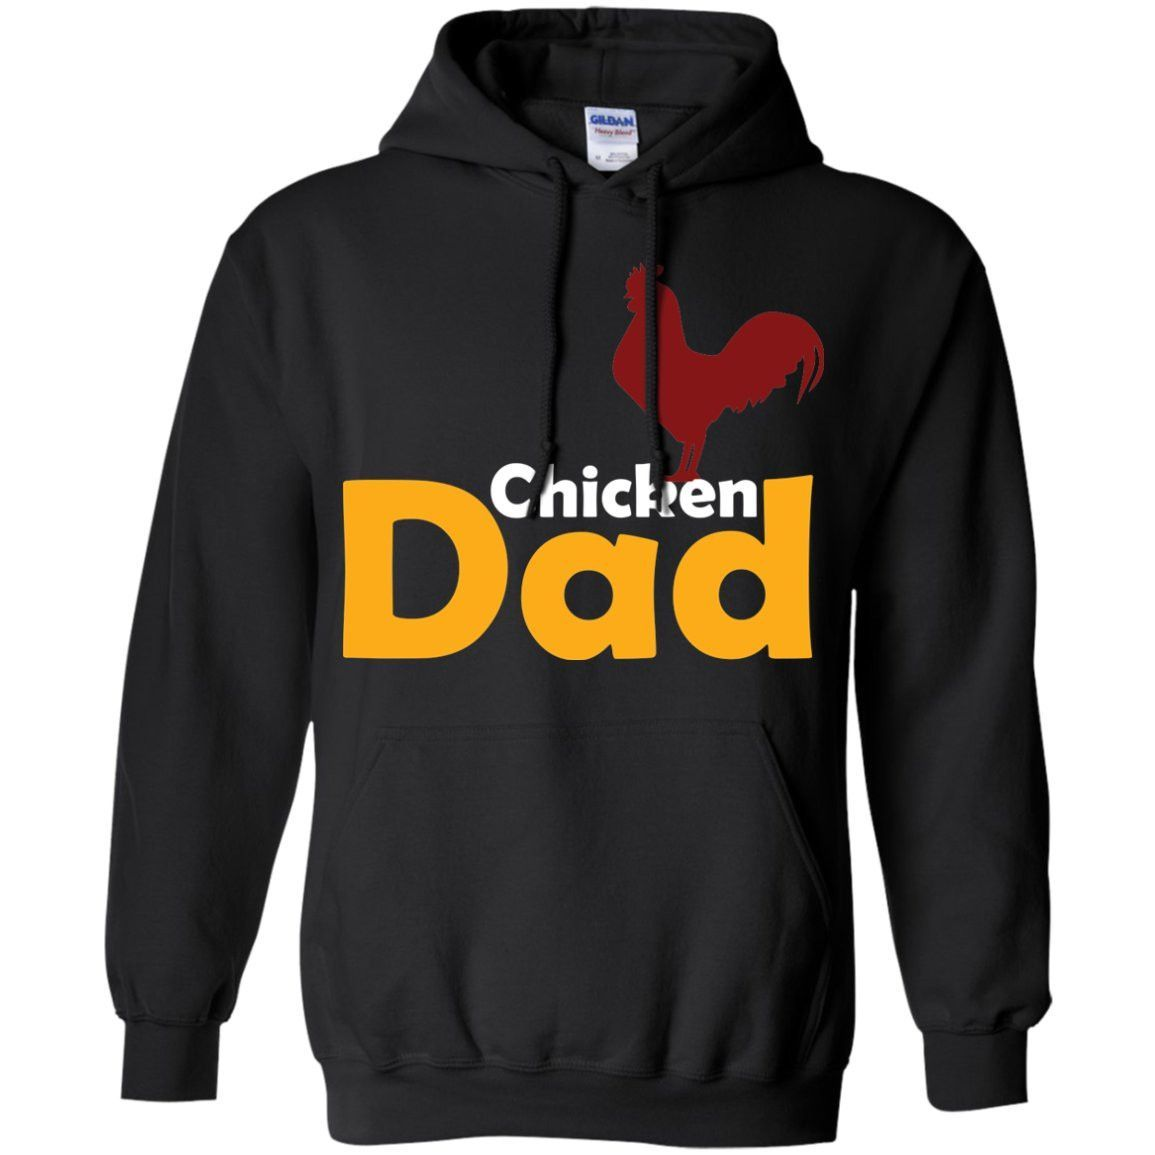 Funny Chicken Themed Gift - Chicken Dad Shirt Pullover Hoodie 8 oz